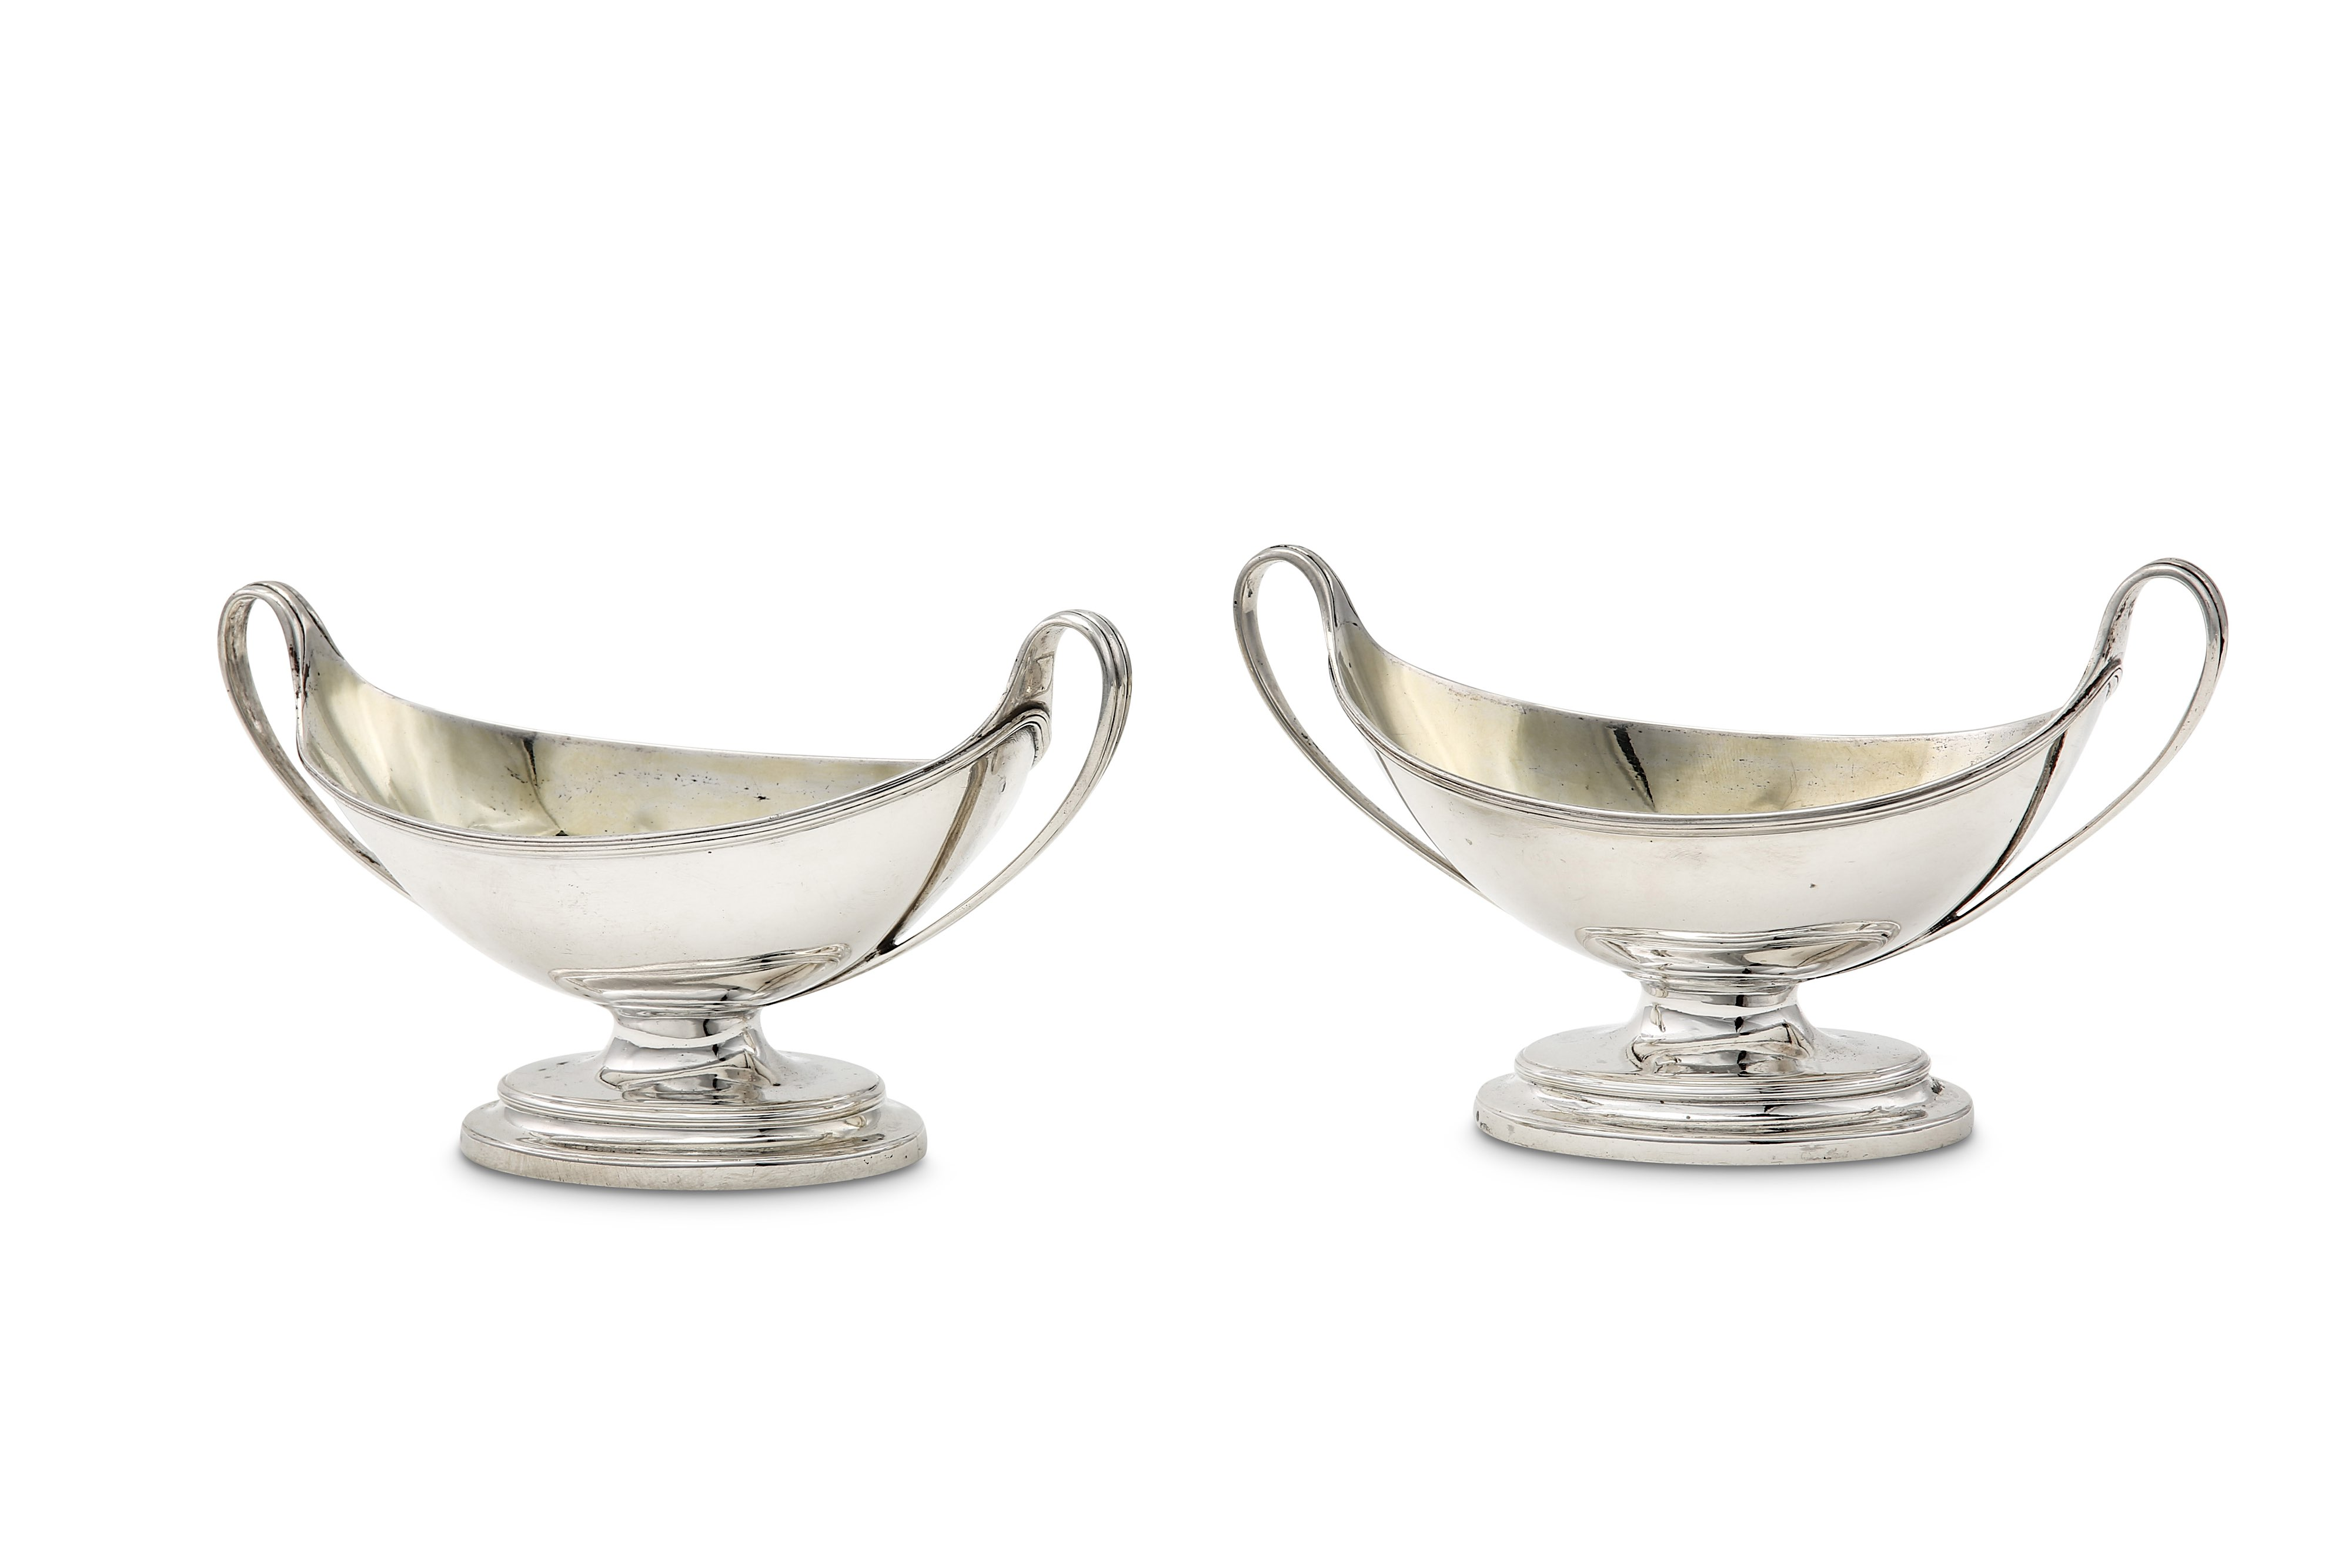 Lot 10 - A pair of George III sterling silver twin handled salts, London 1785 by John Wakelin & William Taylo